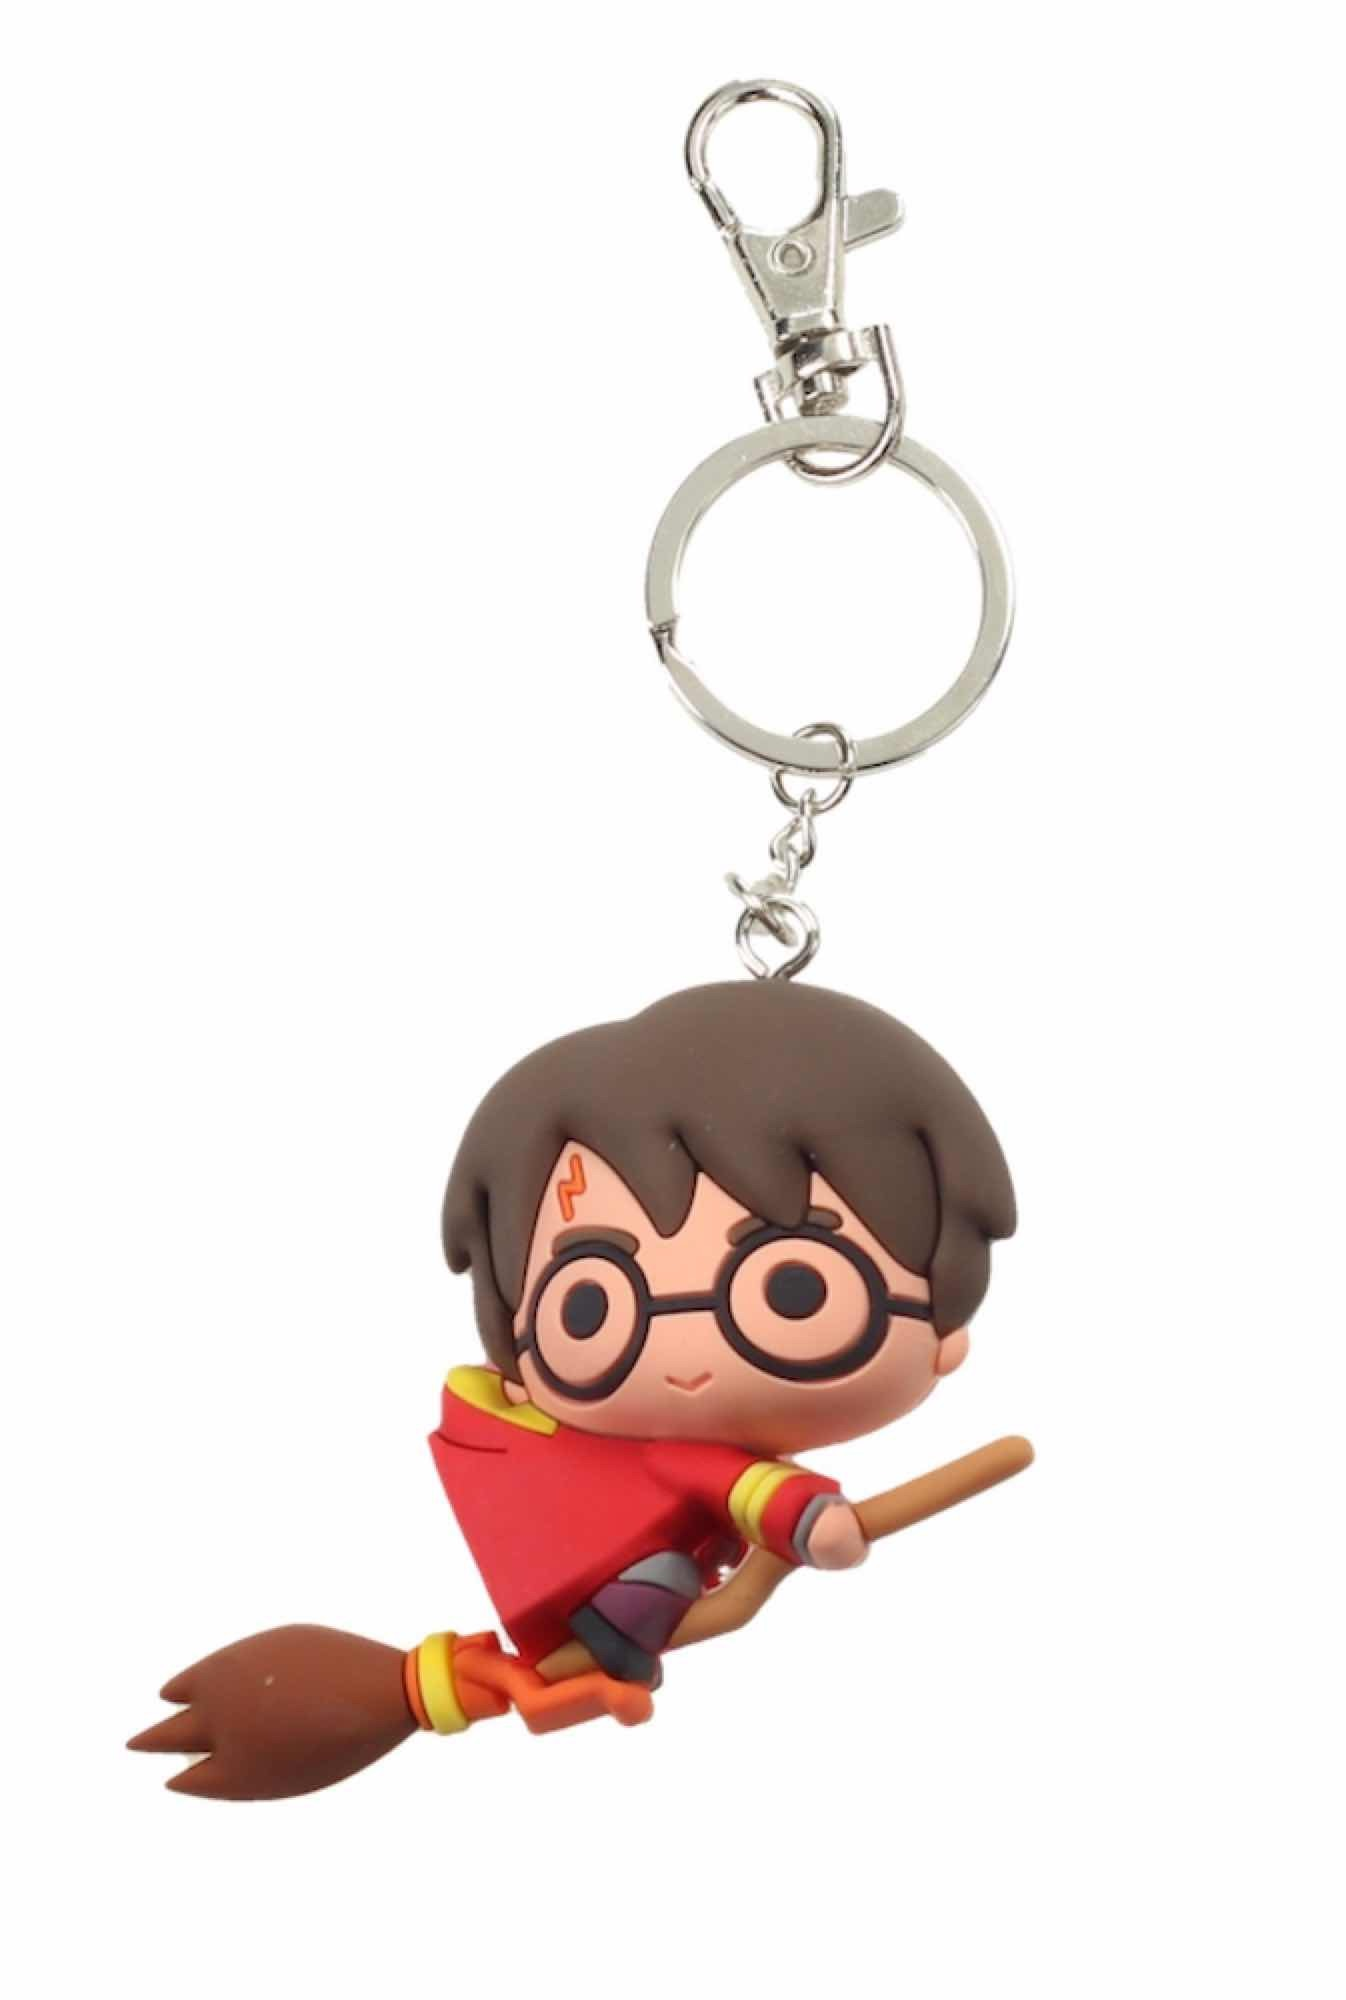 HARRY POTTER CAPA ROJA LLAVERO FIGURATIVO HARRY POTTER BLISTER